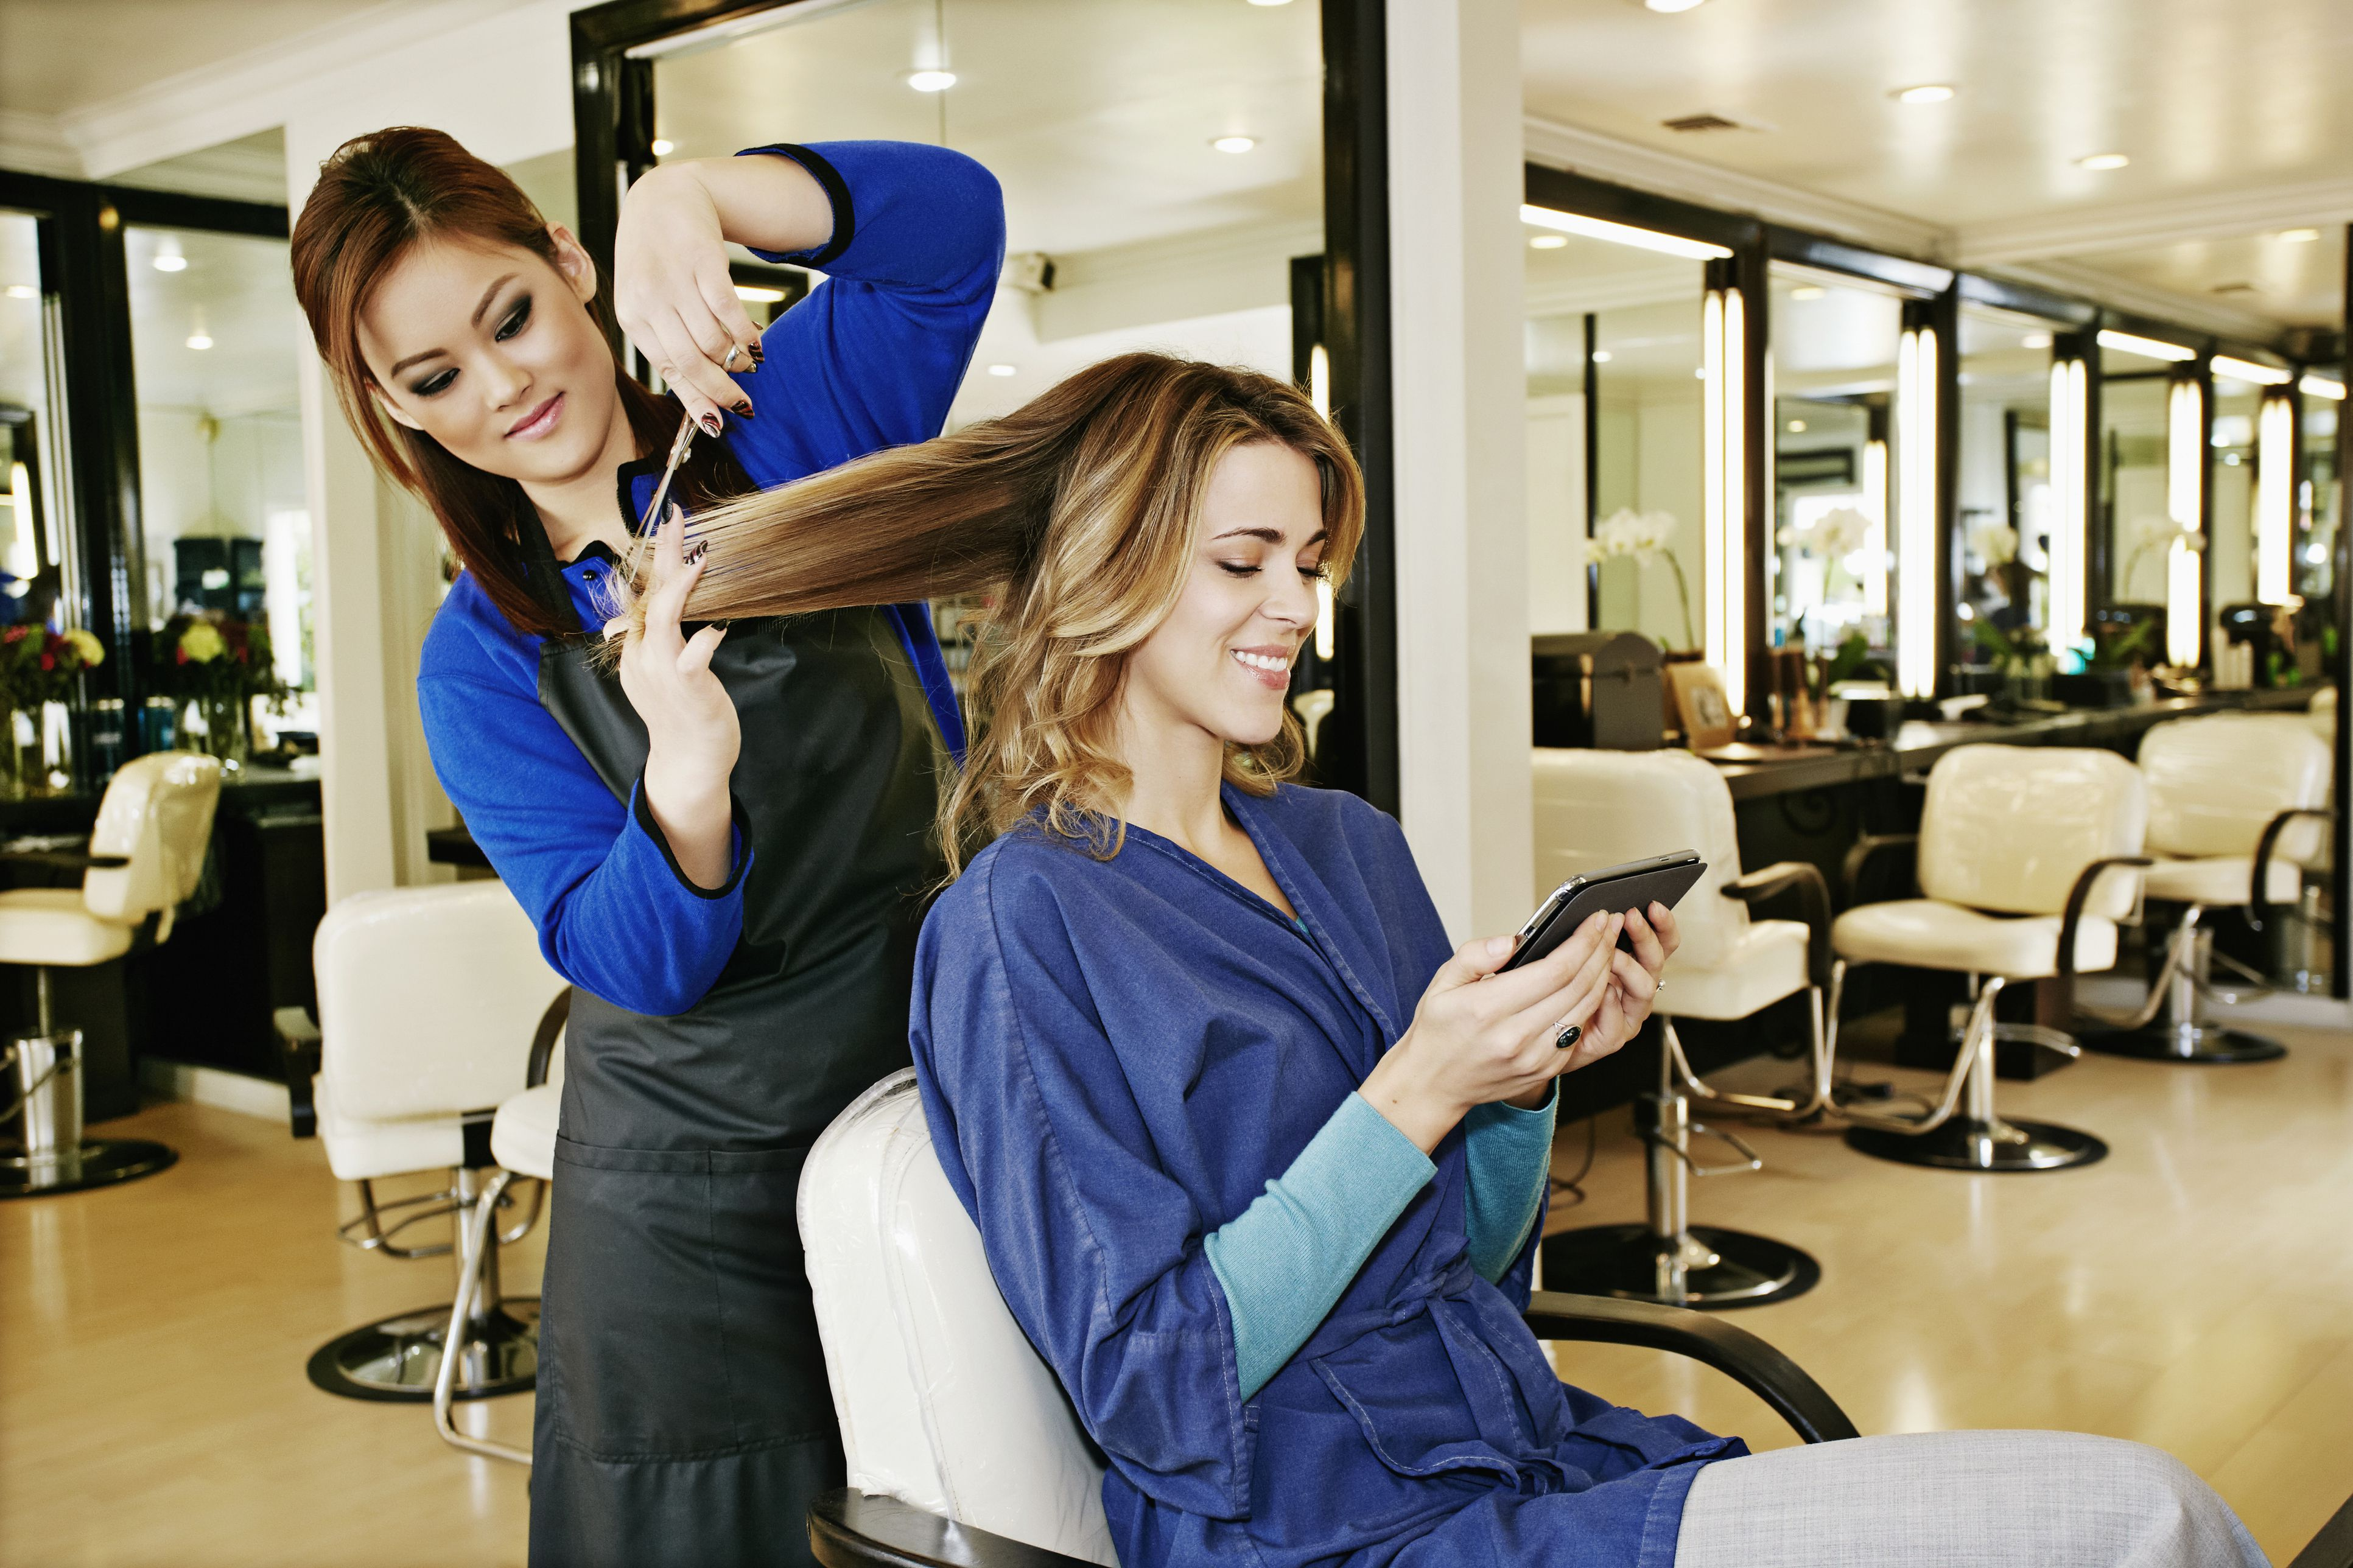 Holiday tipping etiquette to beauty professionals how much should you tip for a haircut urmus Choice Image